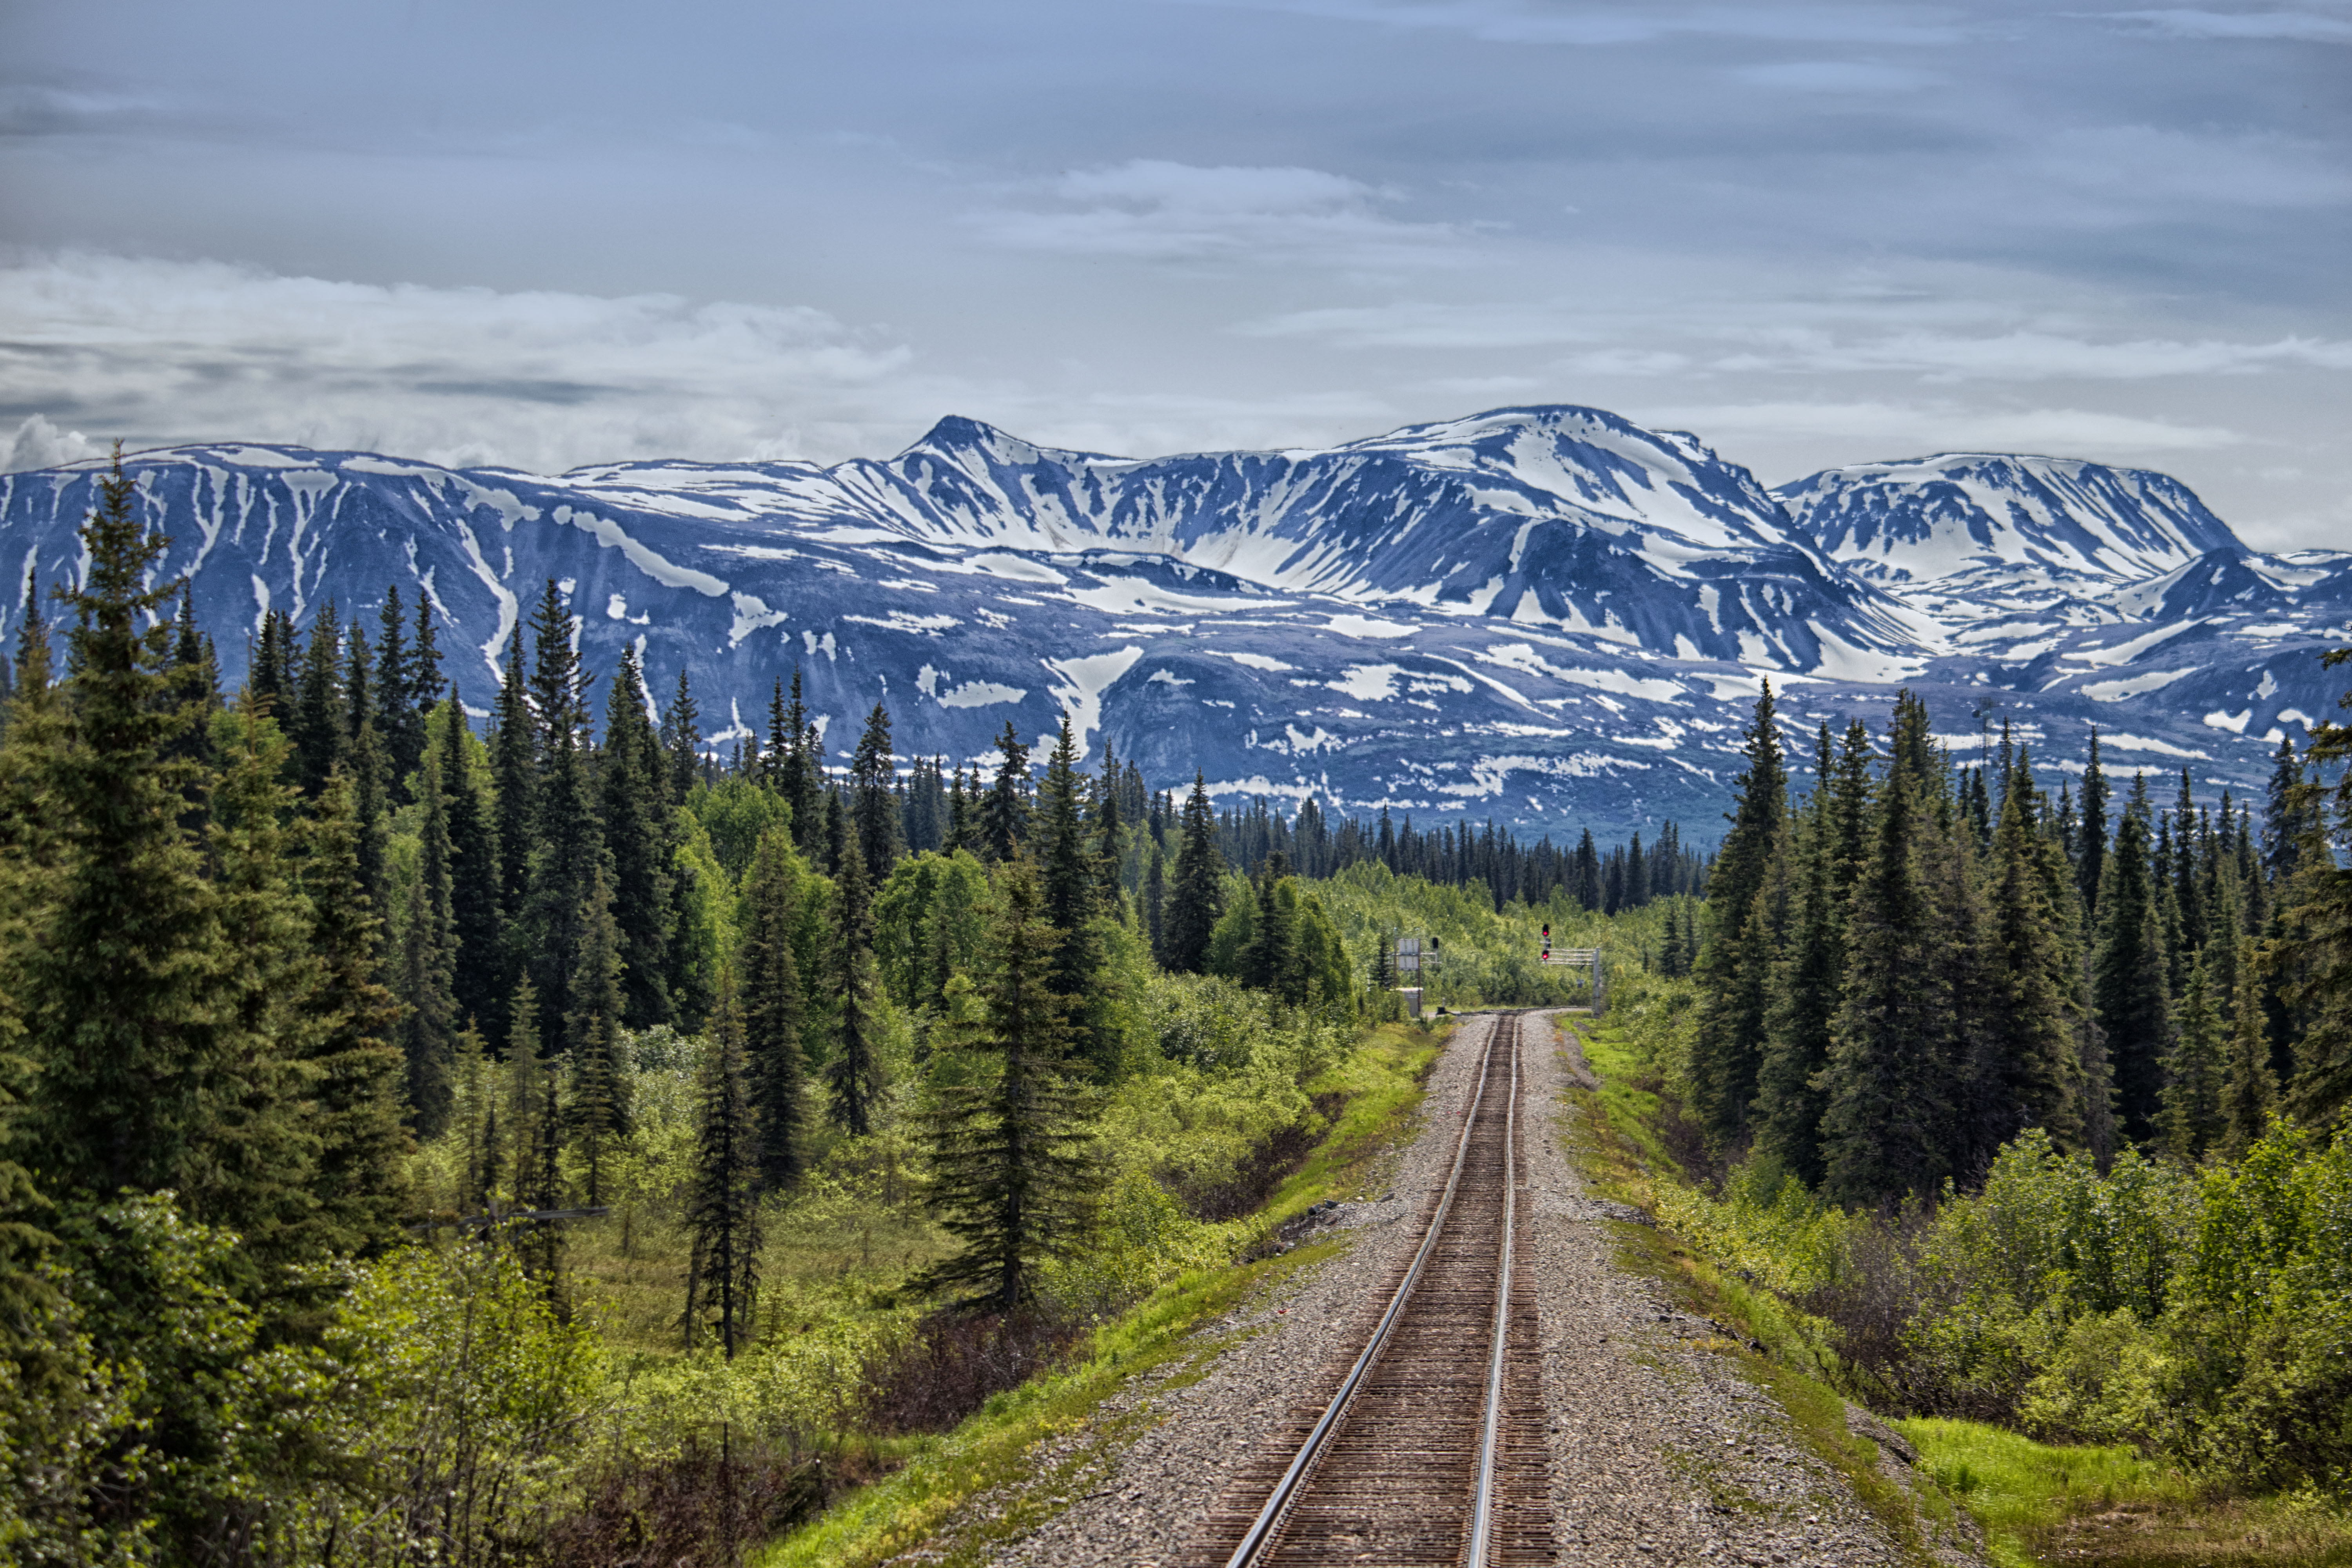 On the Way to Denali